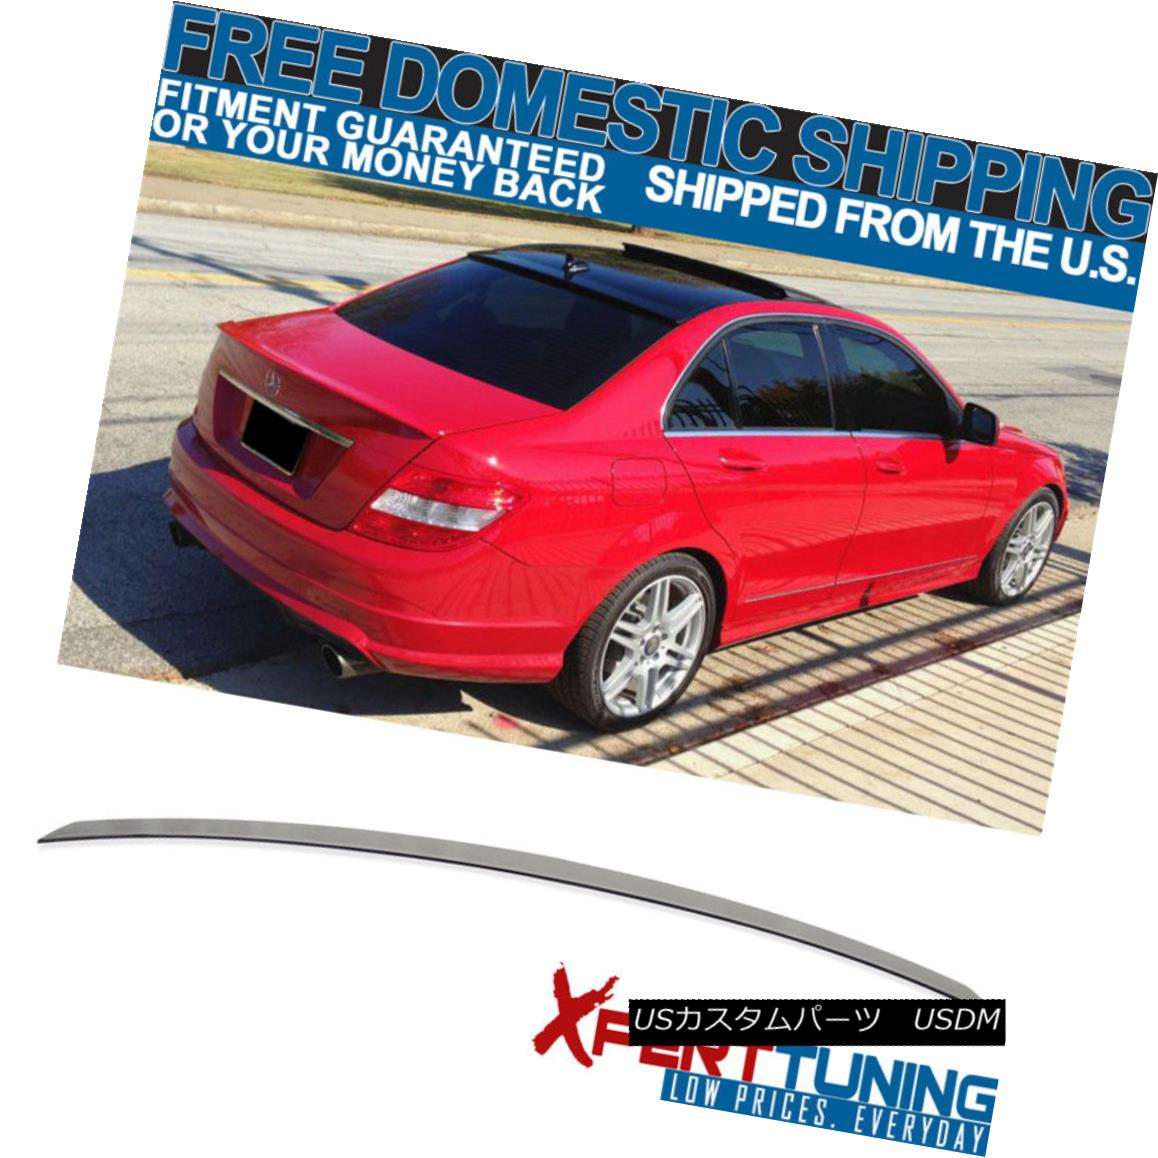 Fits 03-08 CLK-Class W209 Coupe AMG Painted Trunk Spoiler #723 Pewter Metallic